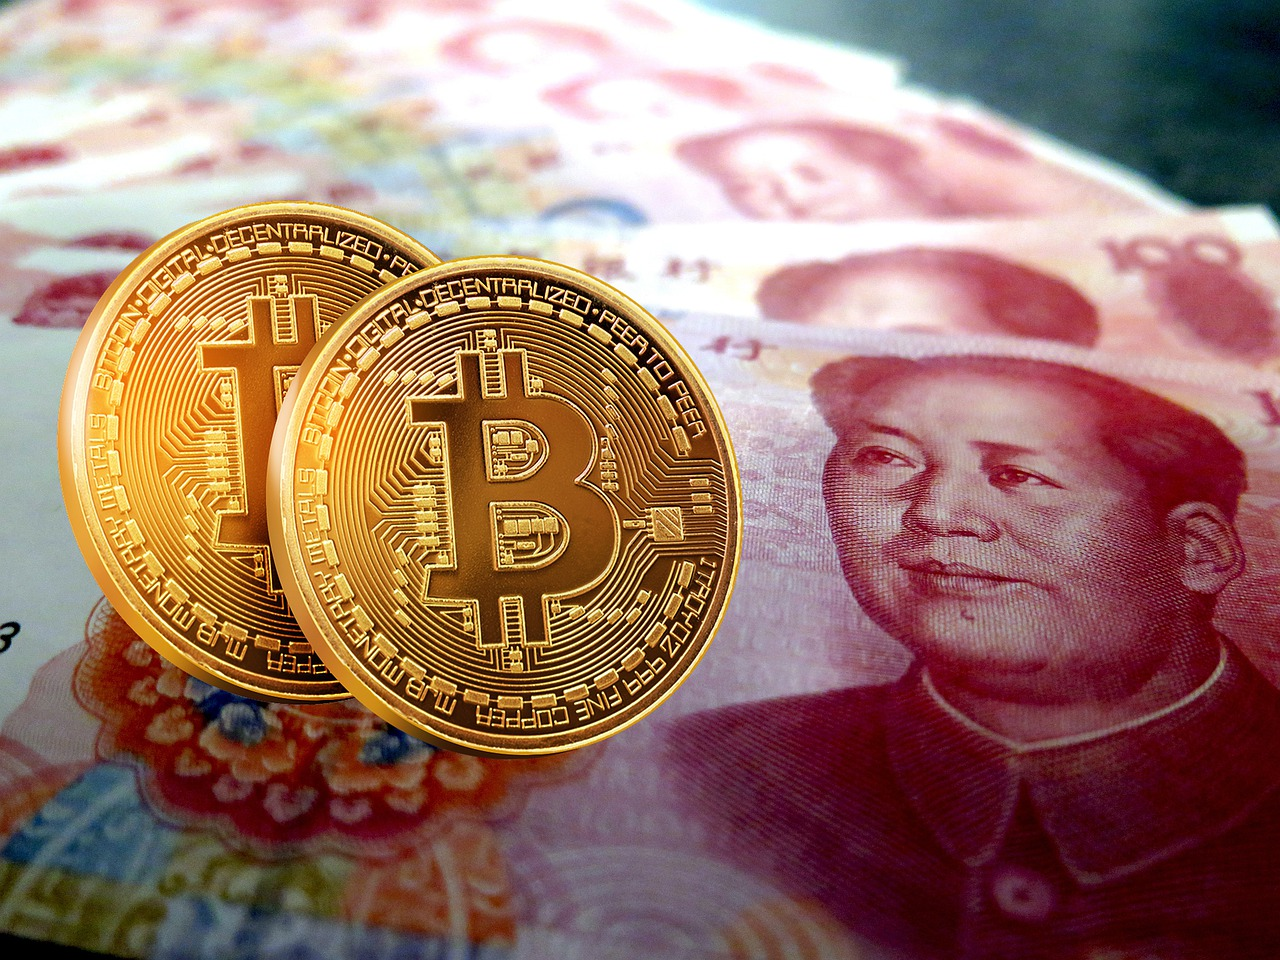 China: Is the PBoC's new 'reminder' on Bitcoin's status really new